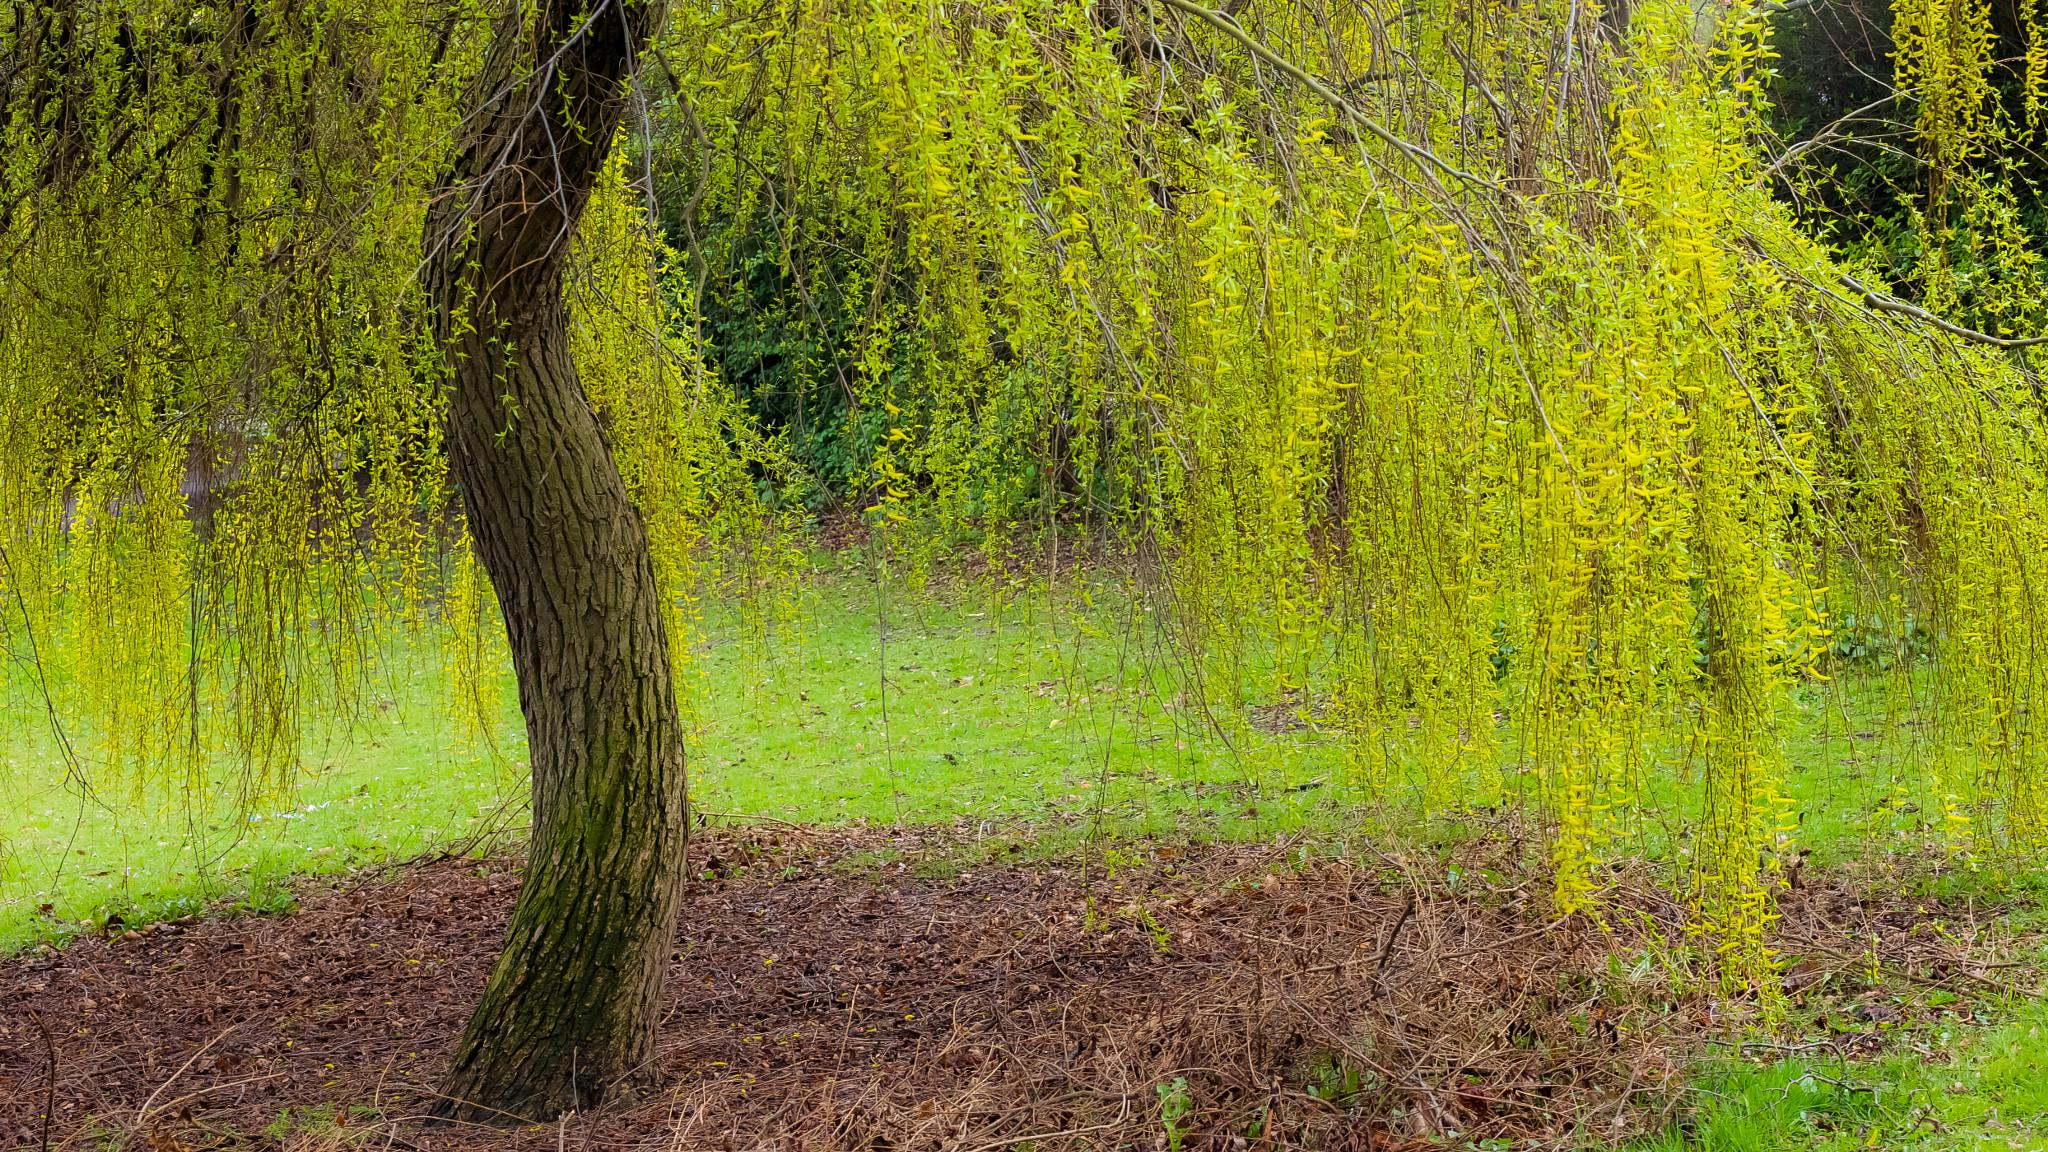 Willow by Peter Edwardo Vicente.